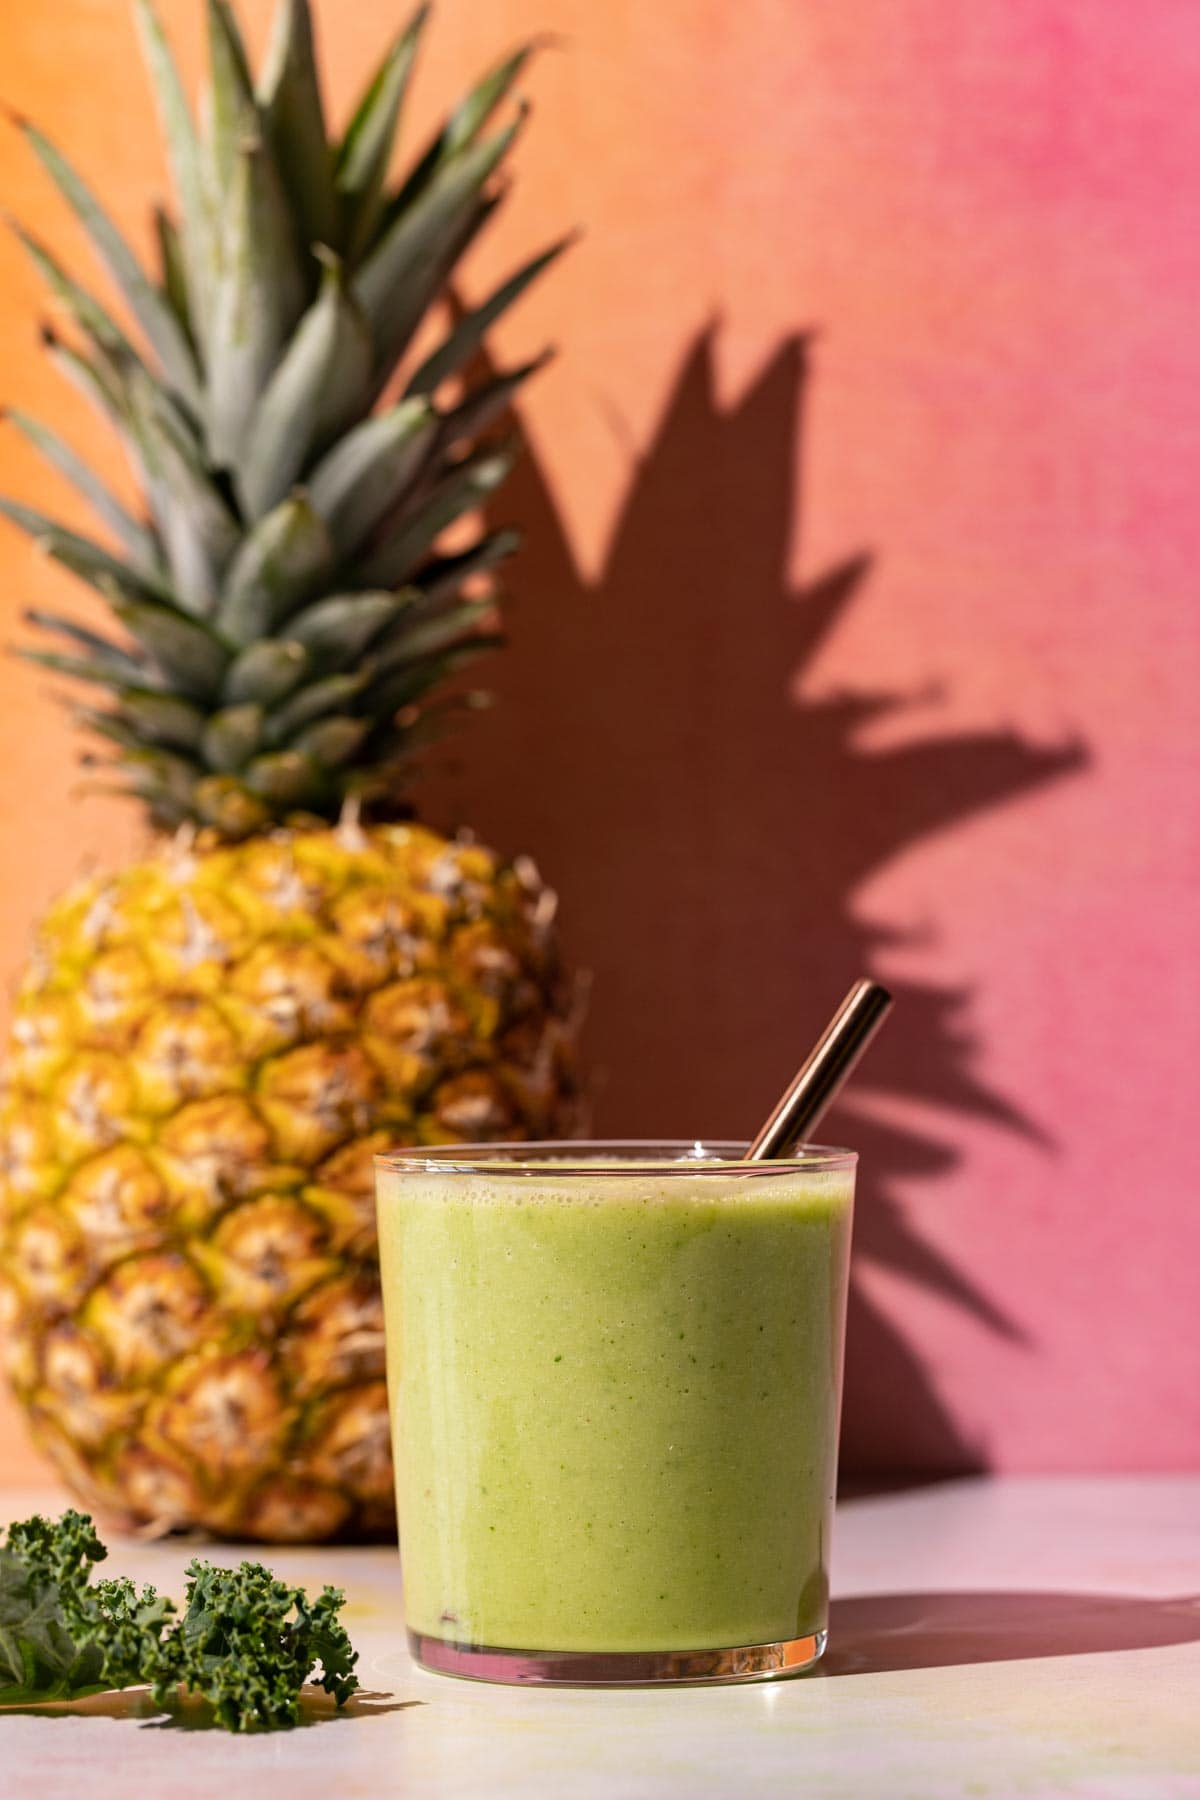 Pineapple Peach smoothie on a colorful background with whole pineapple and kale